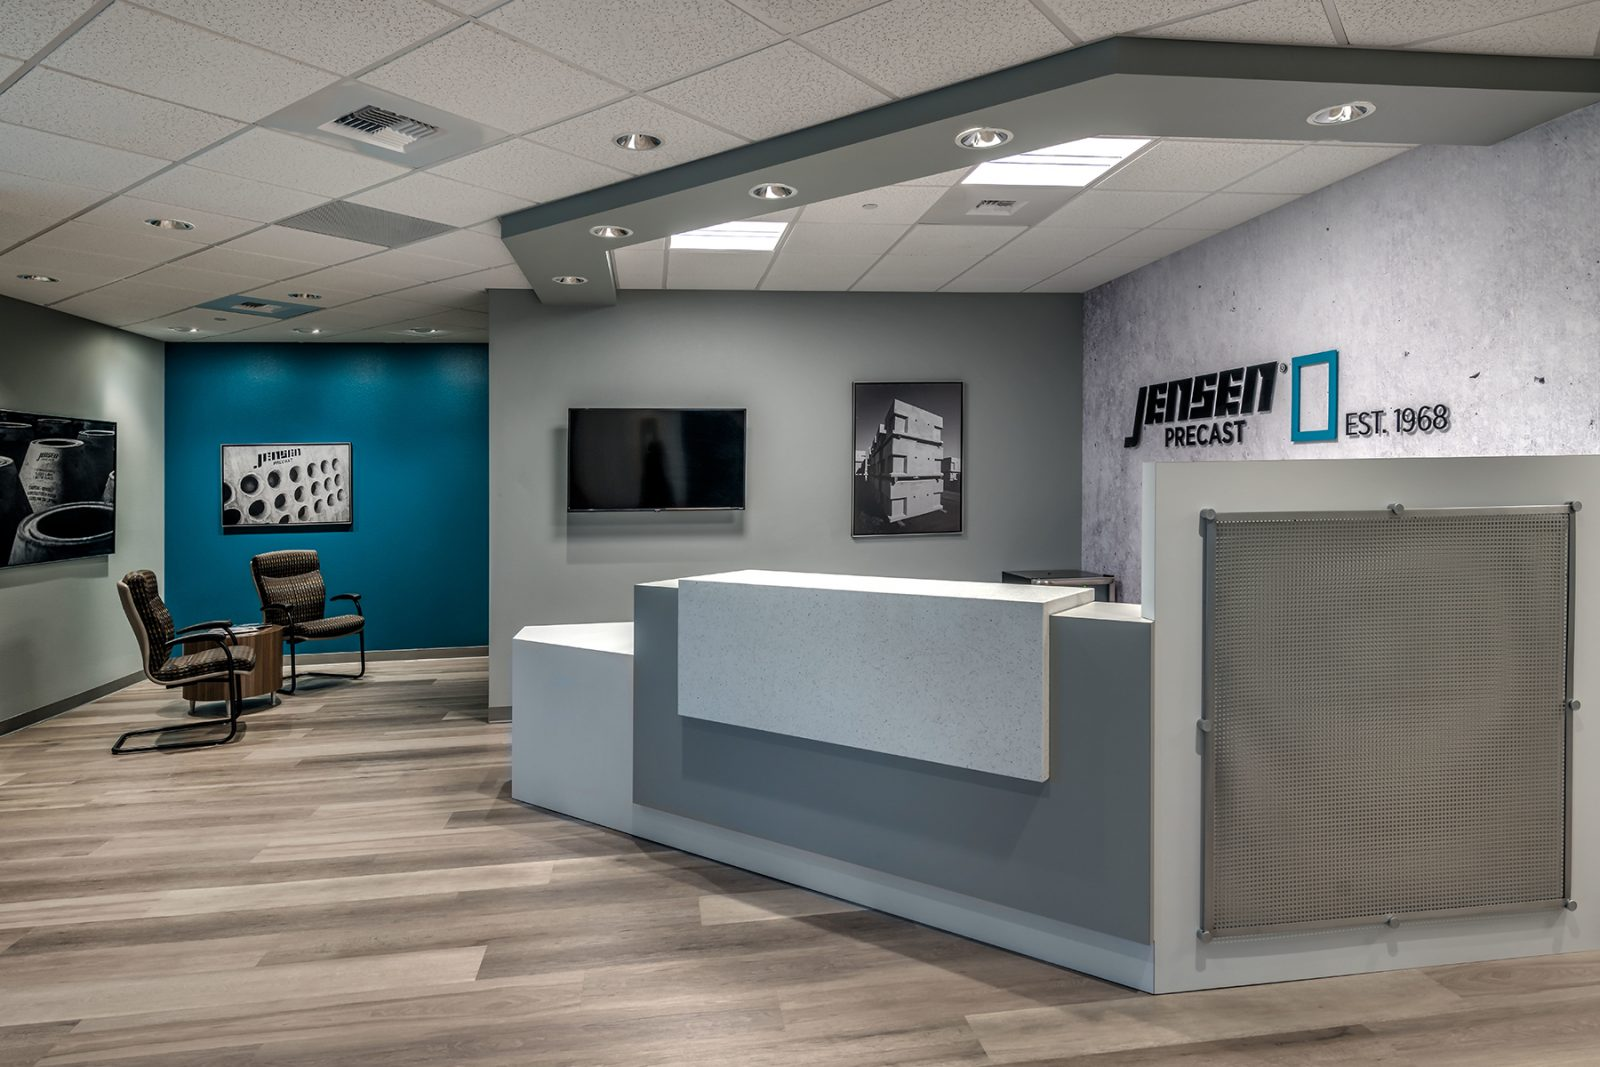 jensen precast office 1